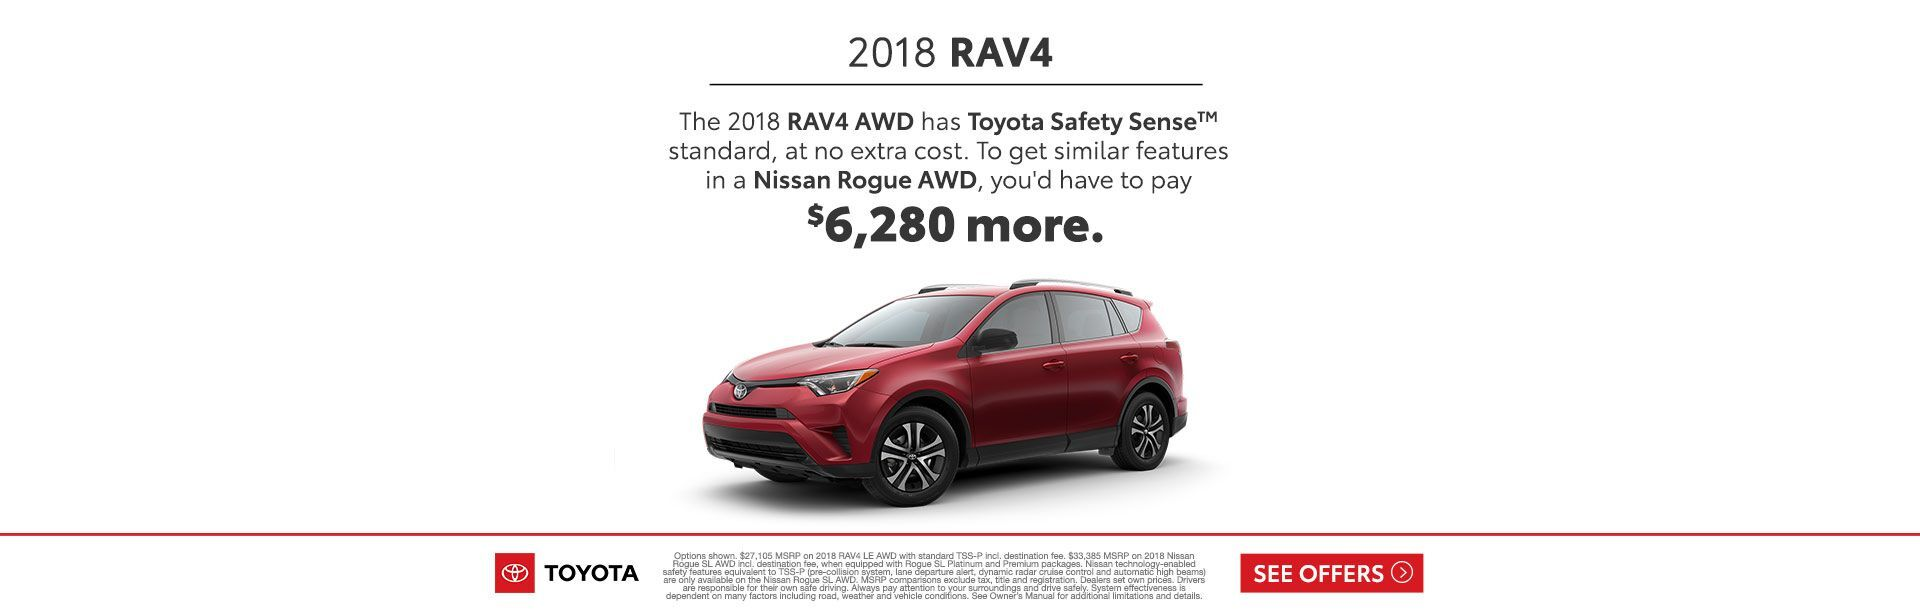 TSS Rav4 Oct 2018